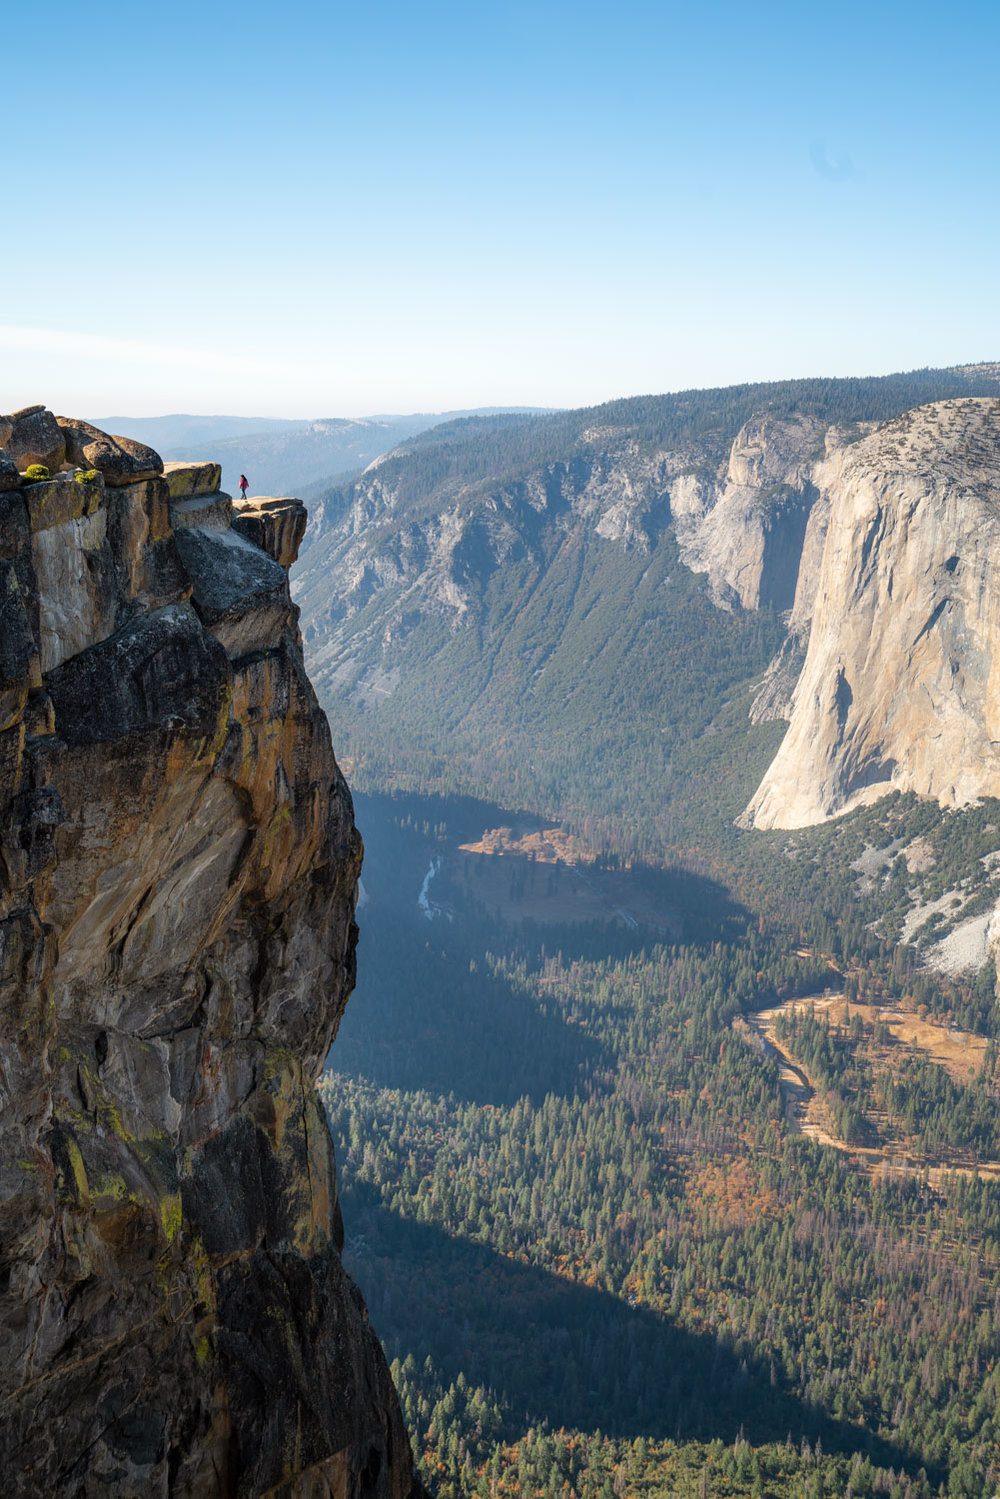 taft-point-cliff-dropoff-yosemite.jpg